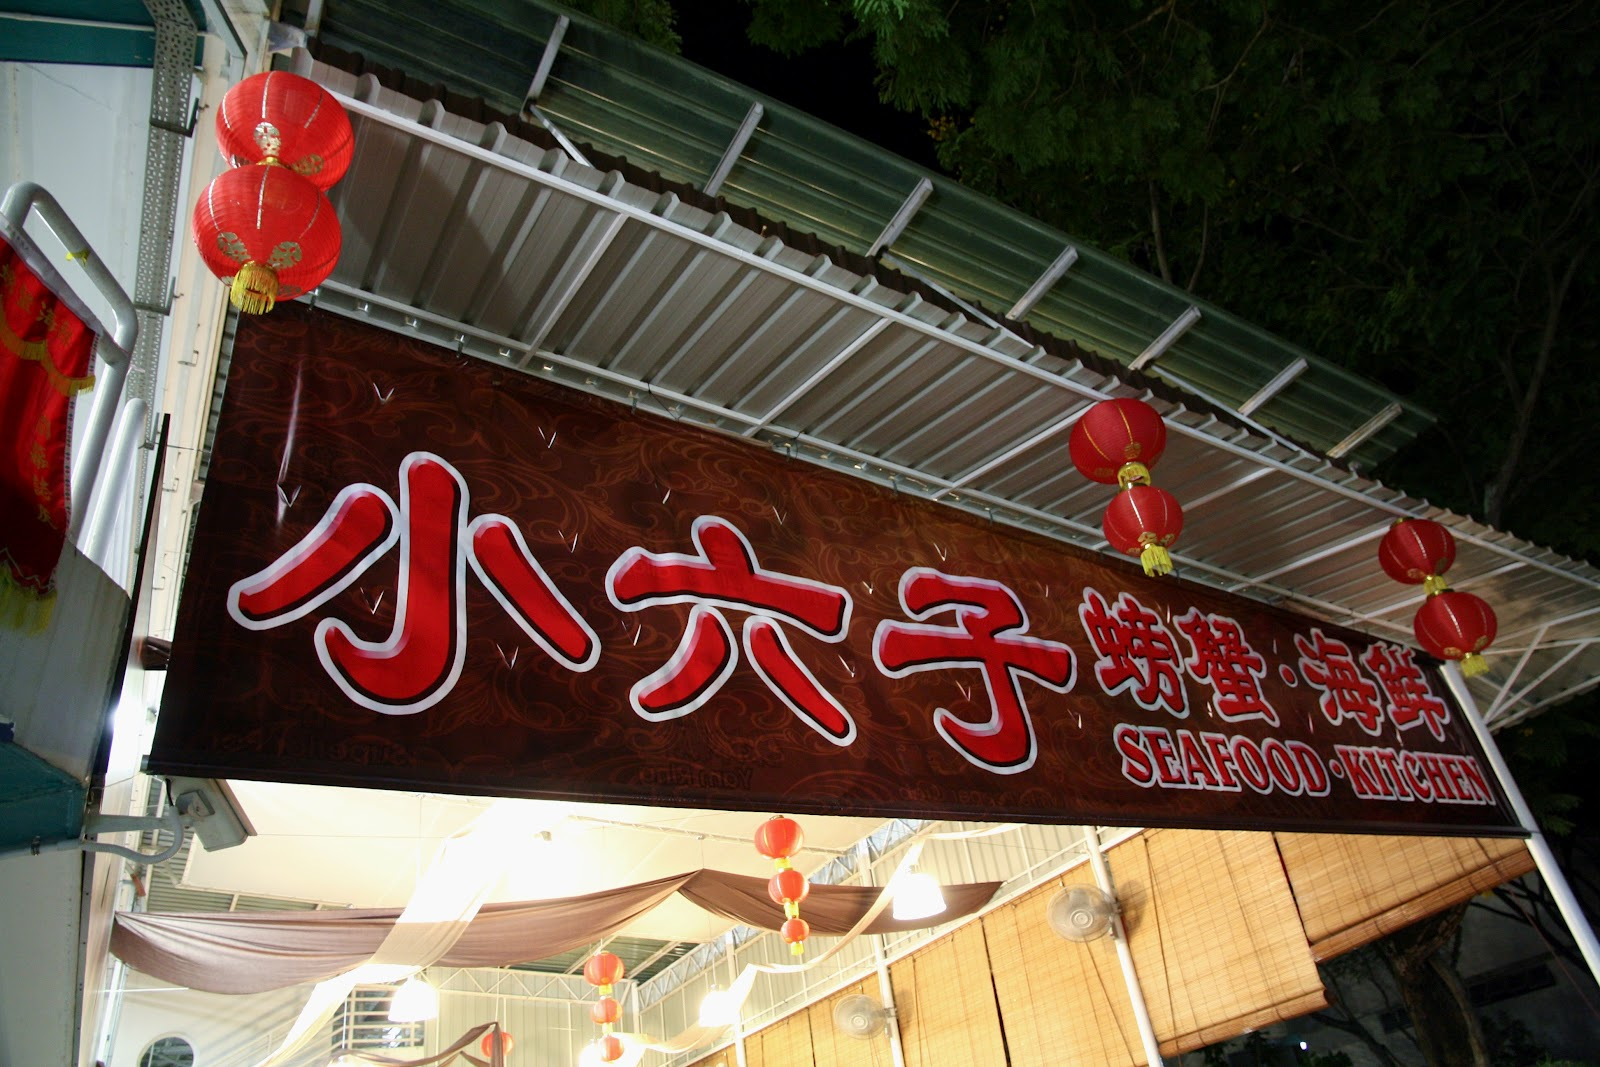 BYO Wines To Xiao Liu Zhi Eatery At Toa Payoh